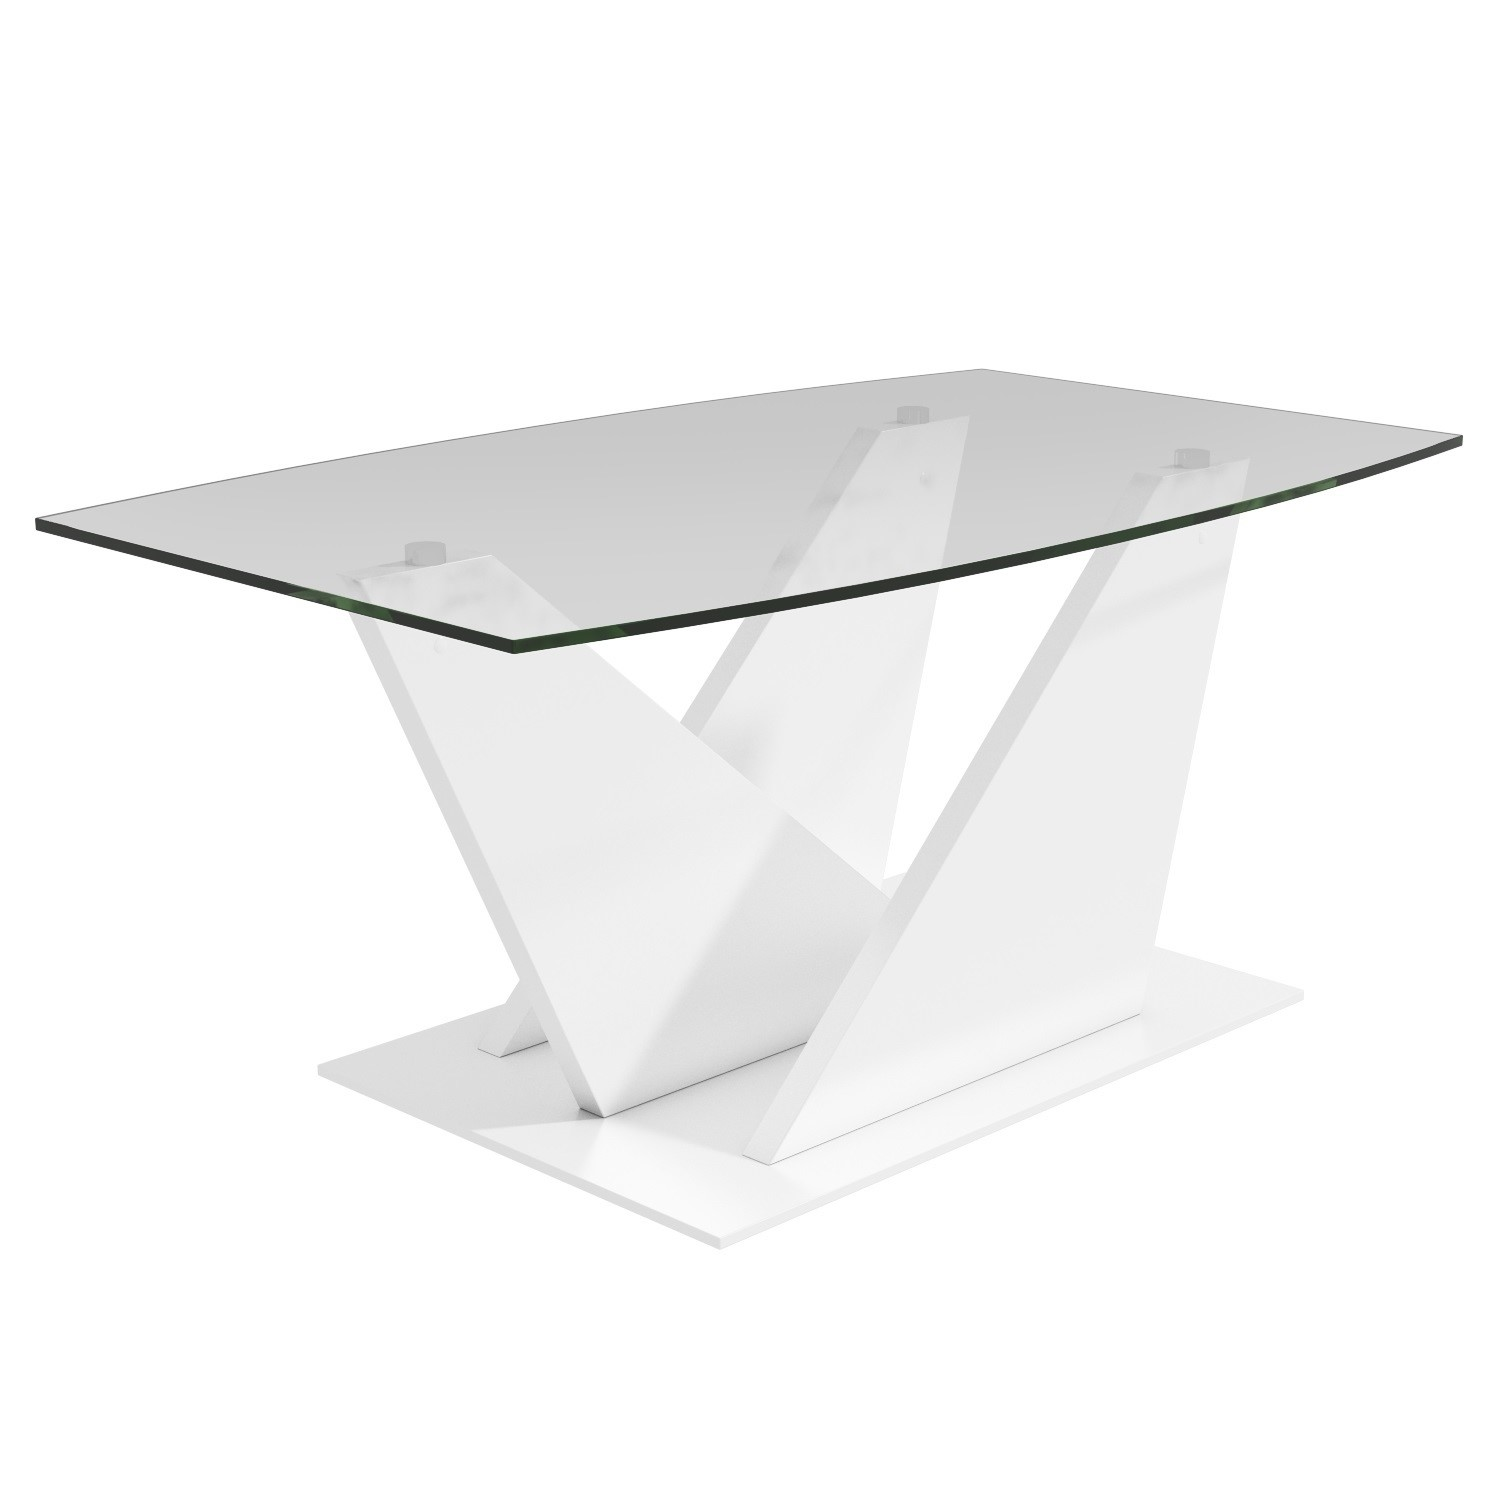 Tiffany White High Gloss Square Coffee Table Furniture: Glass Coffee Table With White High Gloss Stand